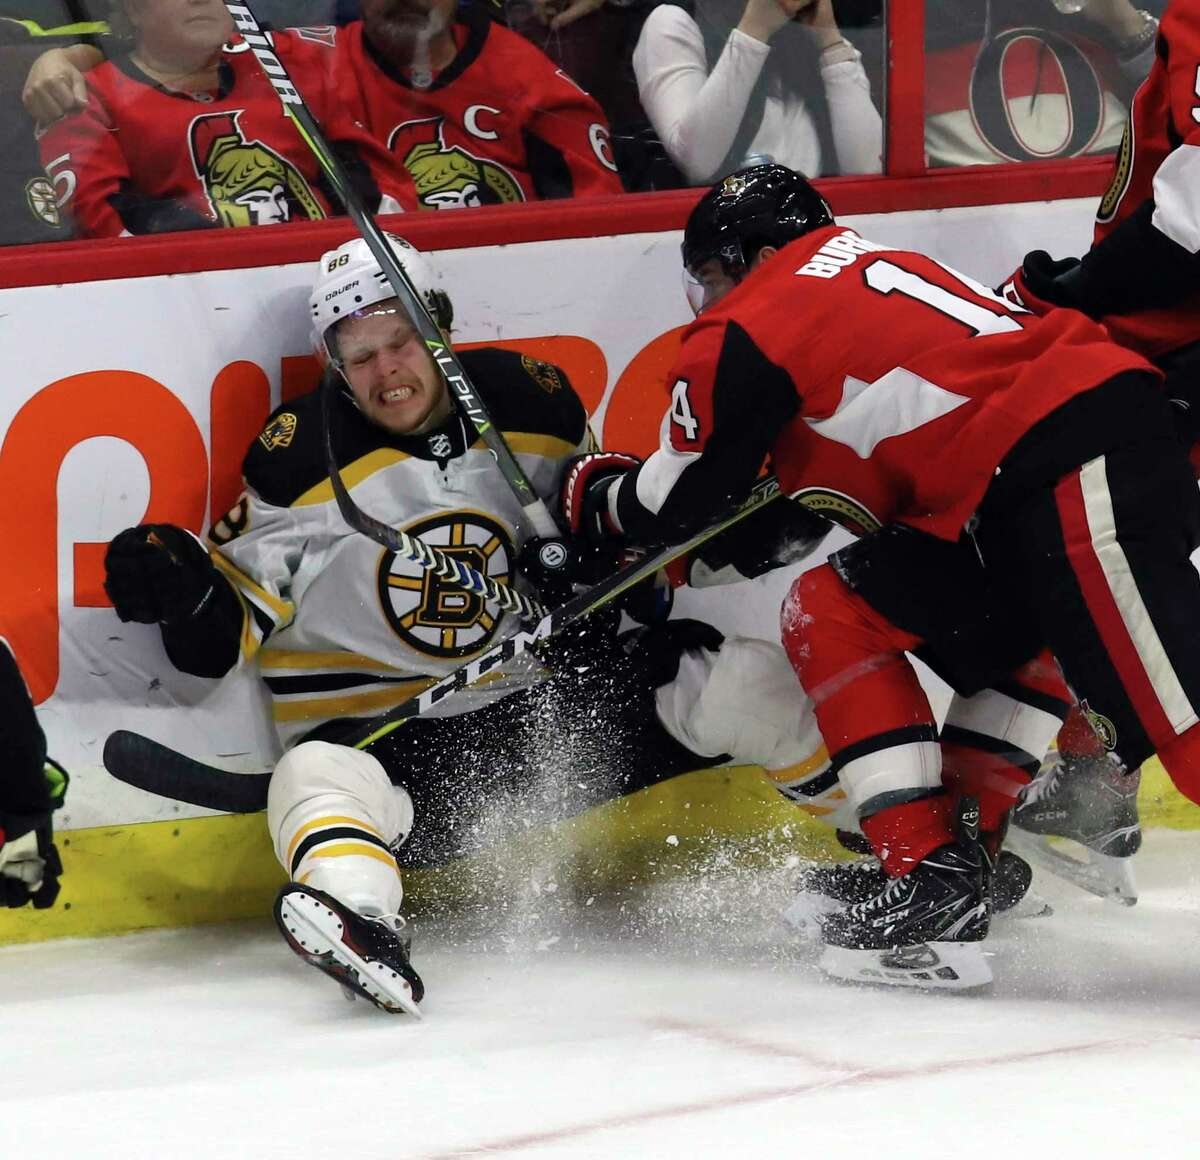 Boston Bruins' David Pastrnak (88) reacts after being checked by Ottawa Senators' Alexandre Burrows (14) during the third period of an NHL hockey game Saturday, Dec. 30, 2017, in Ottawa, Ontario. (Fred Chartrand/The Canadian Press via AP)